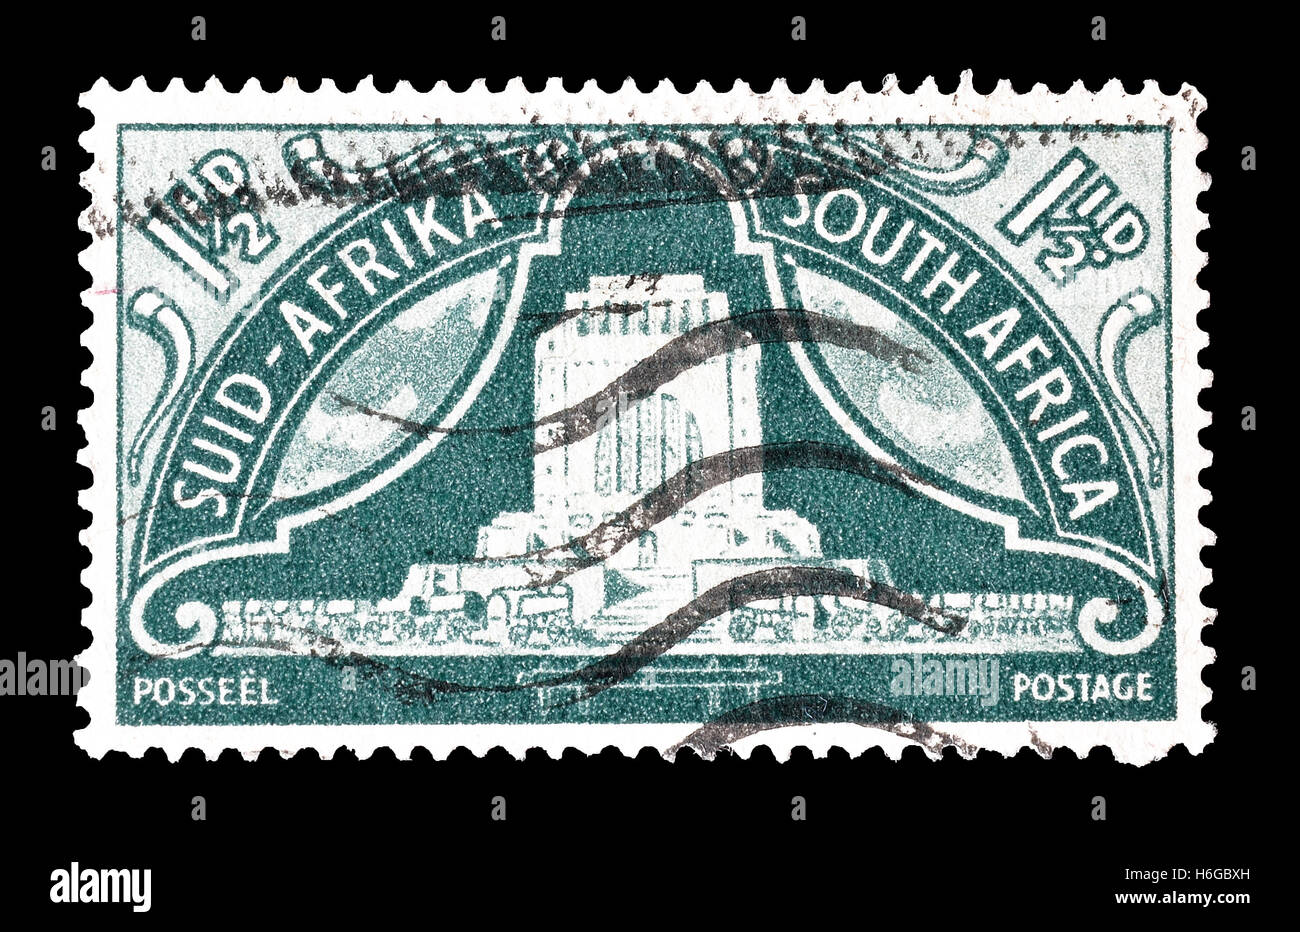 South Africa stamp 1949 - Stock Image